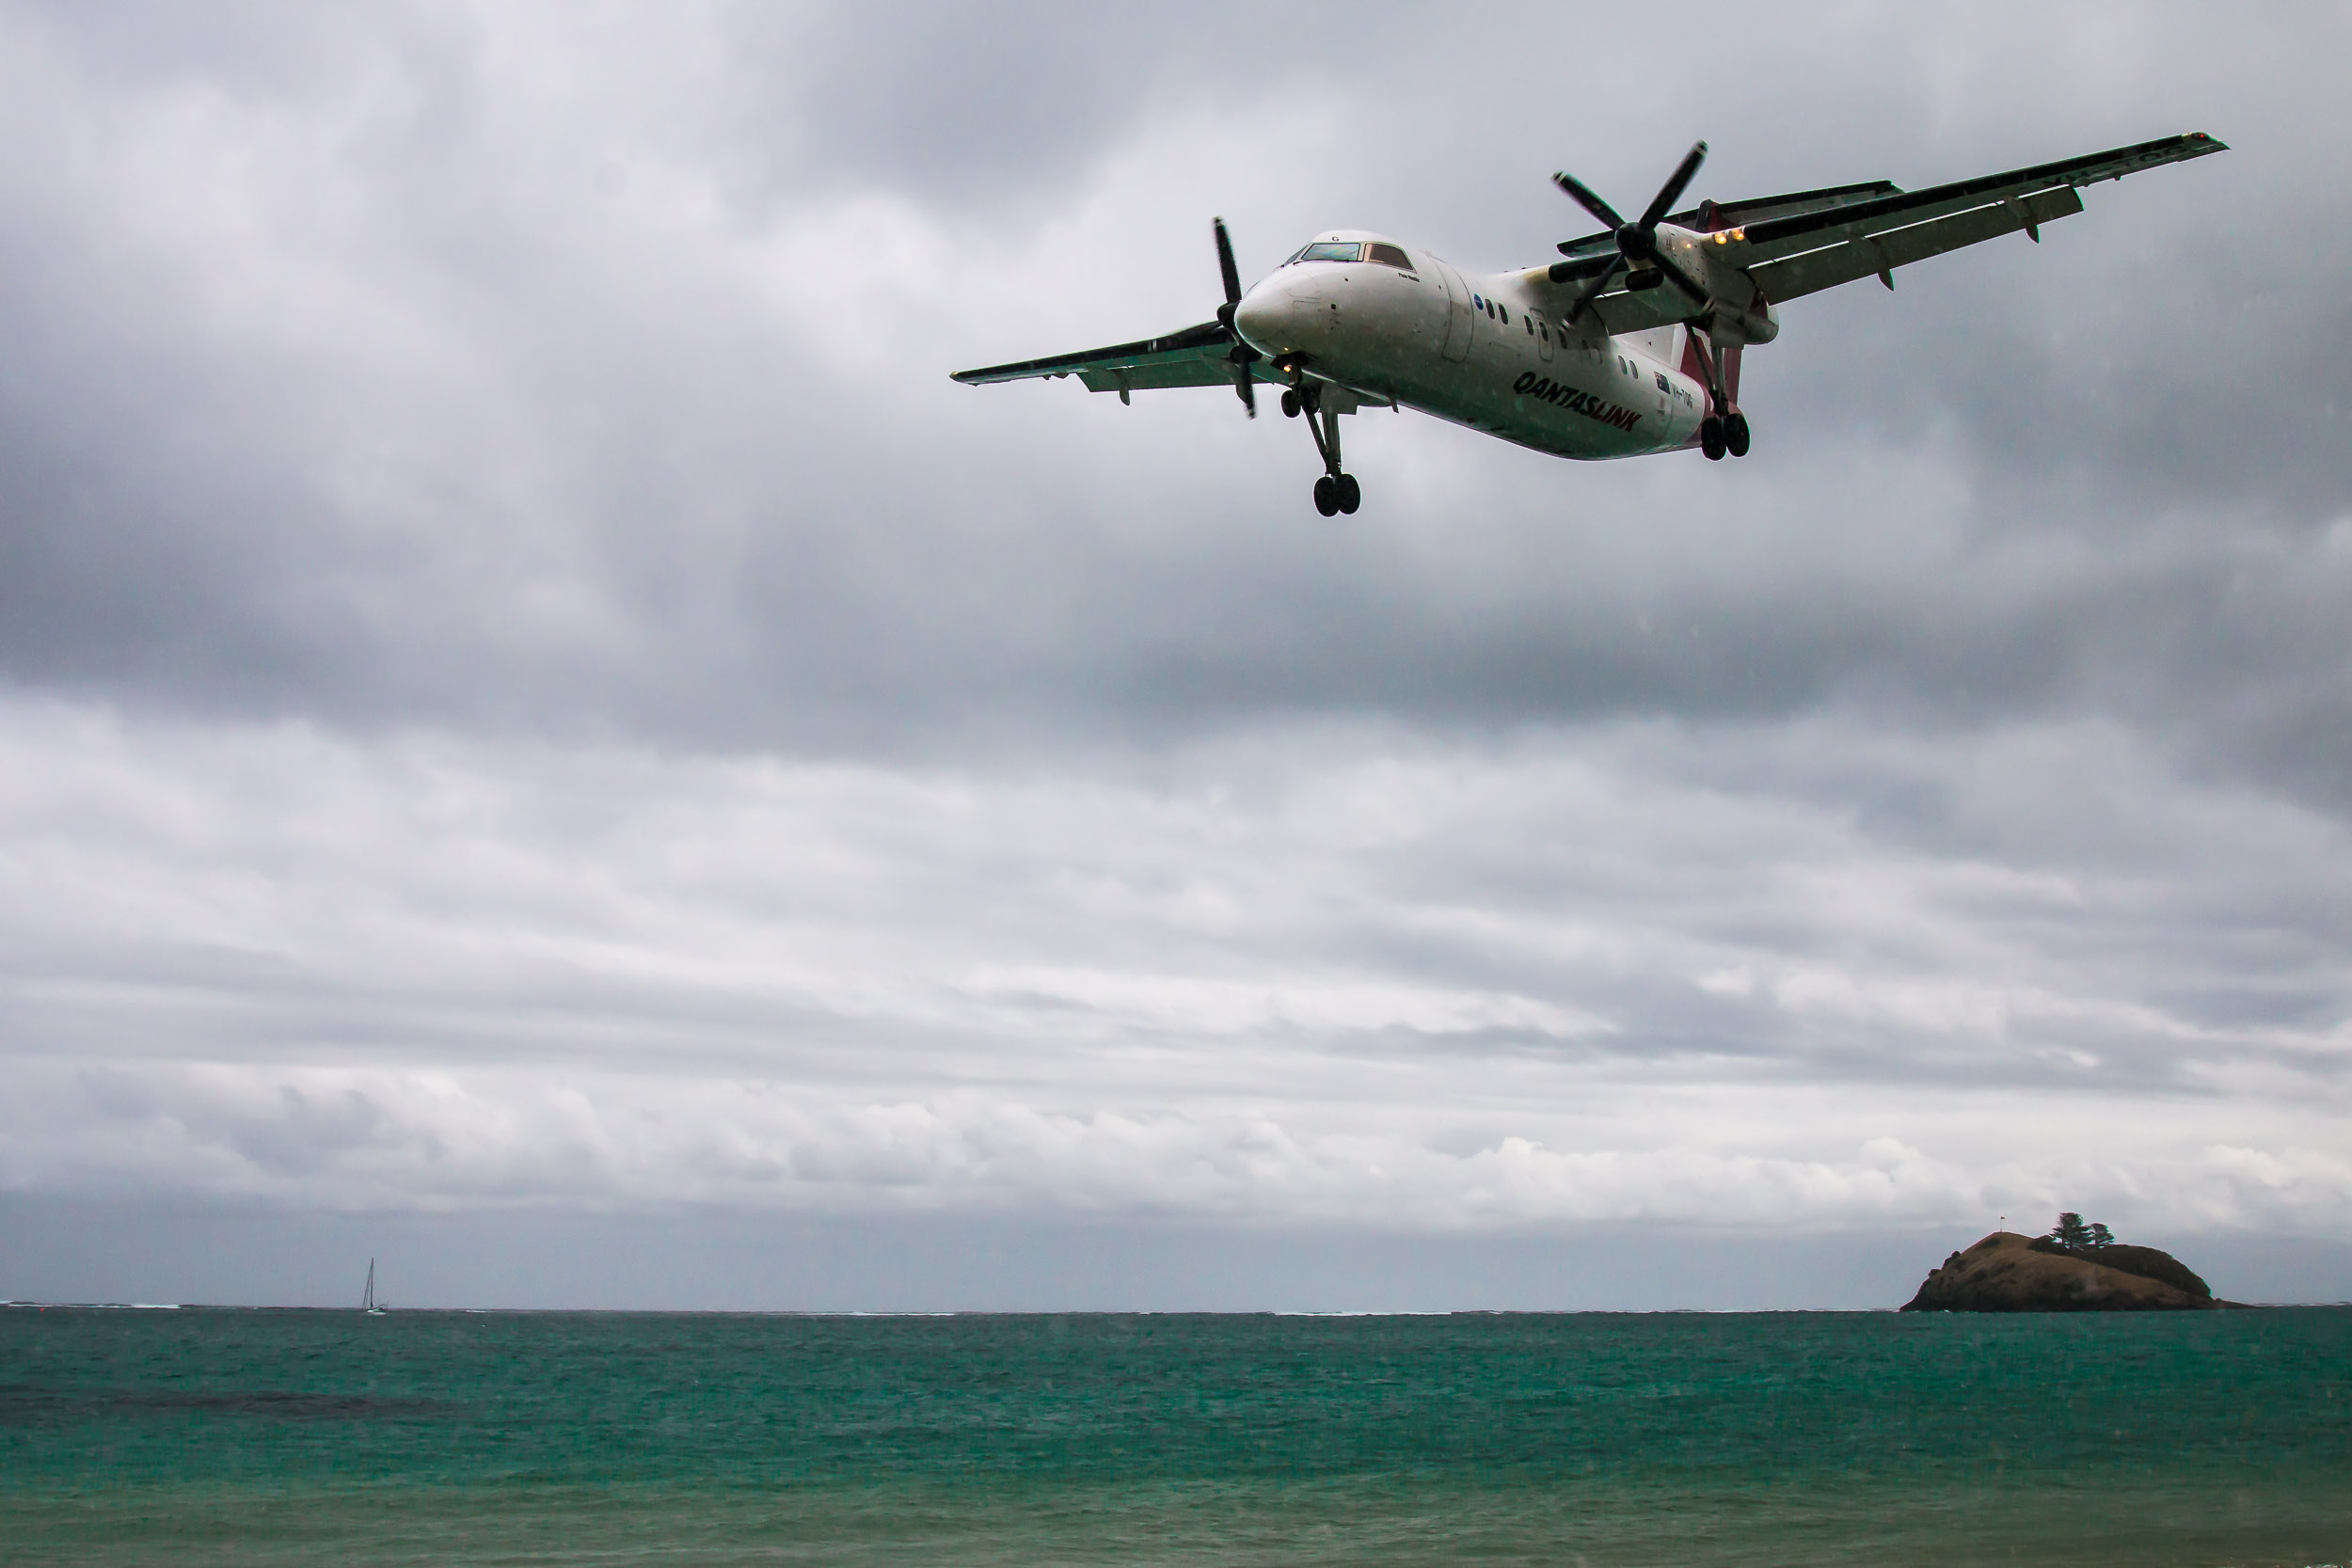 On approach to Lord Howe Island Airport